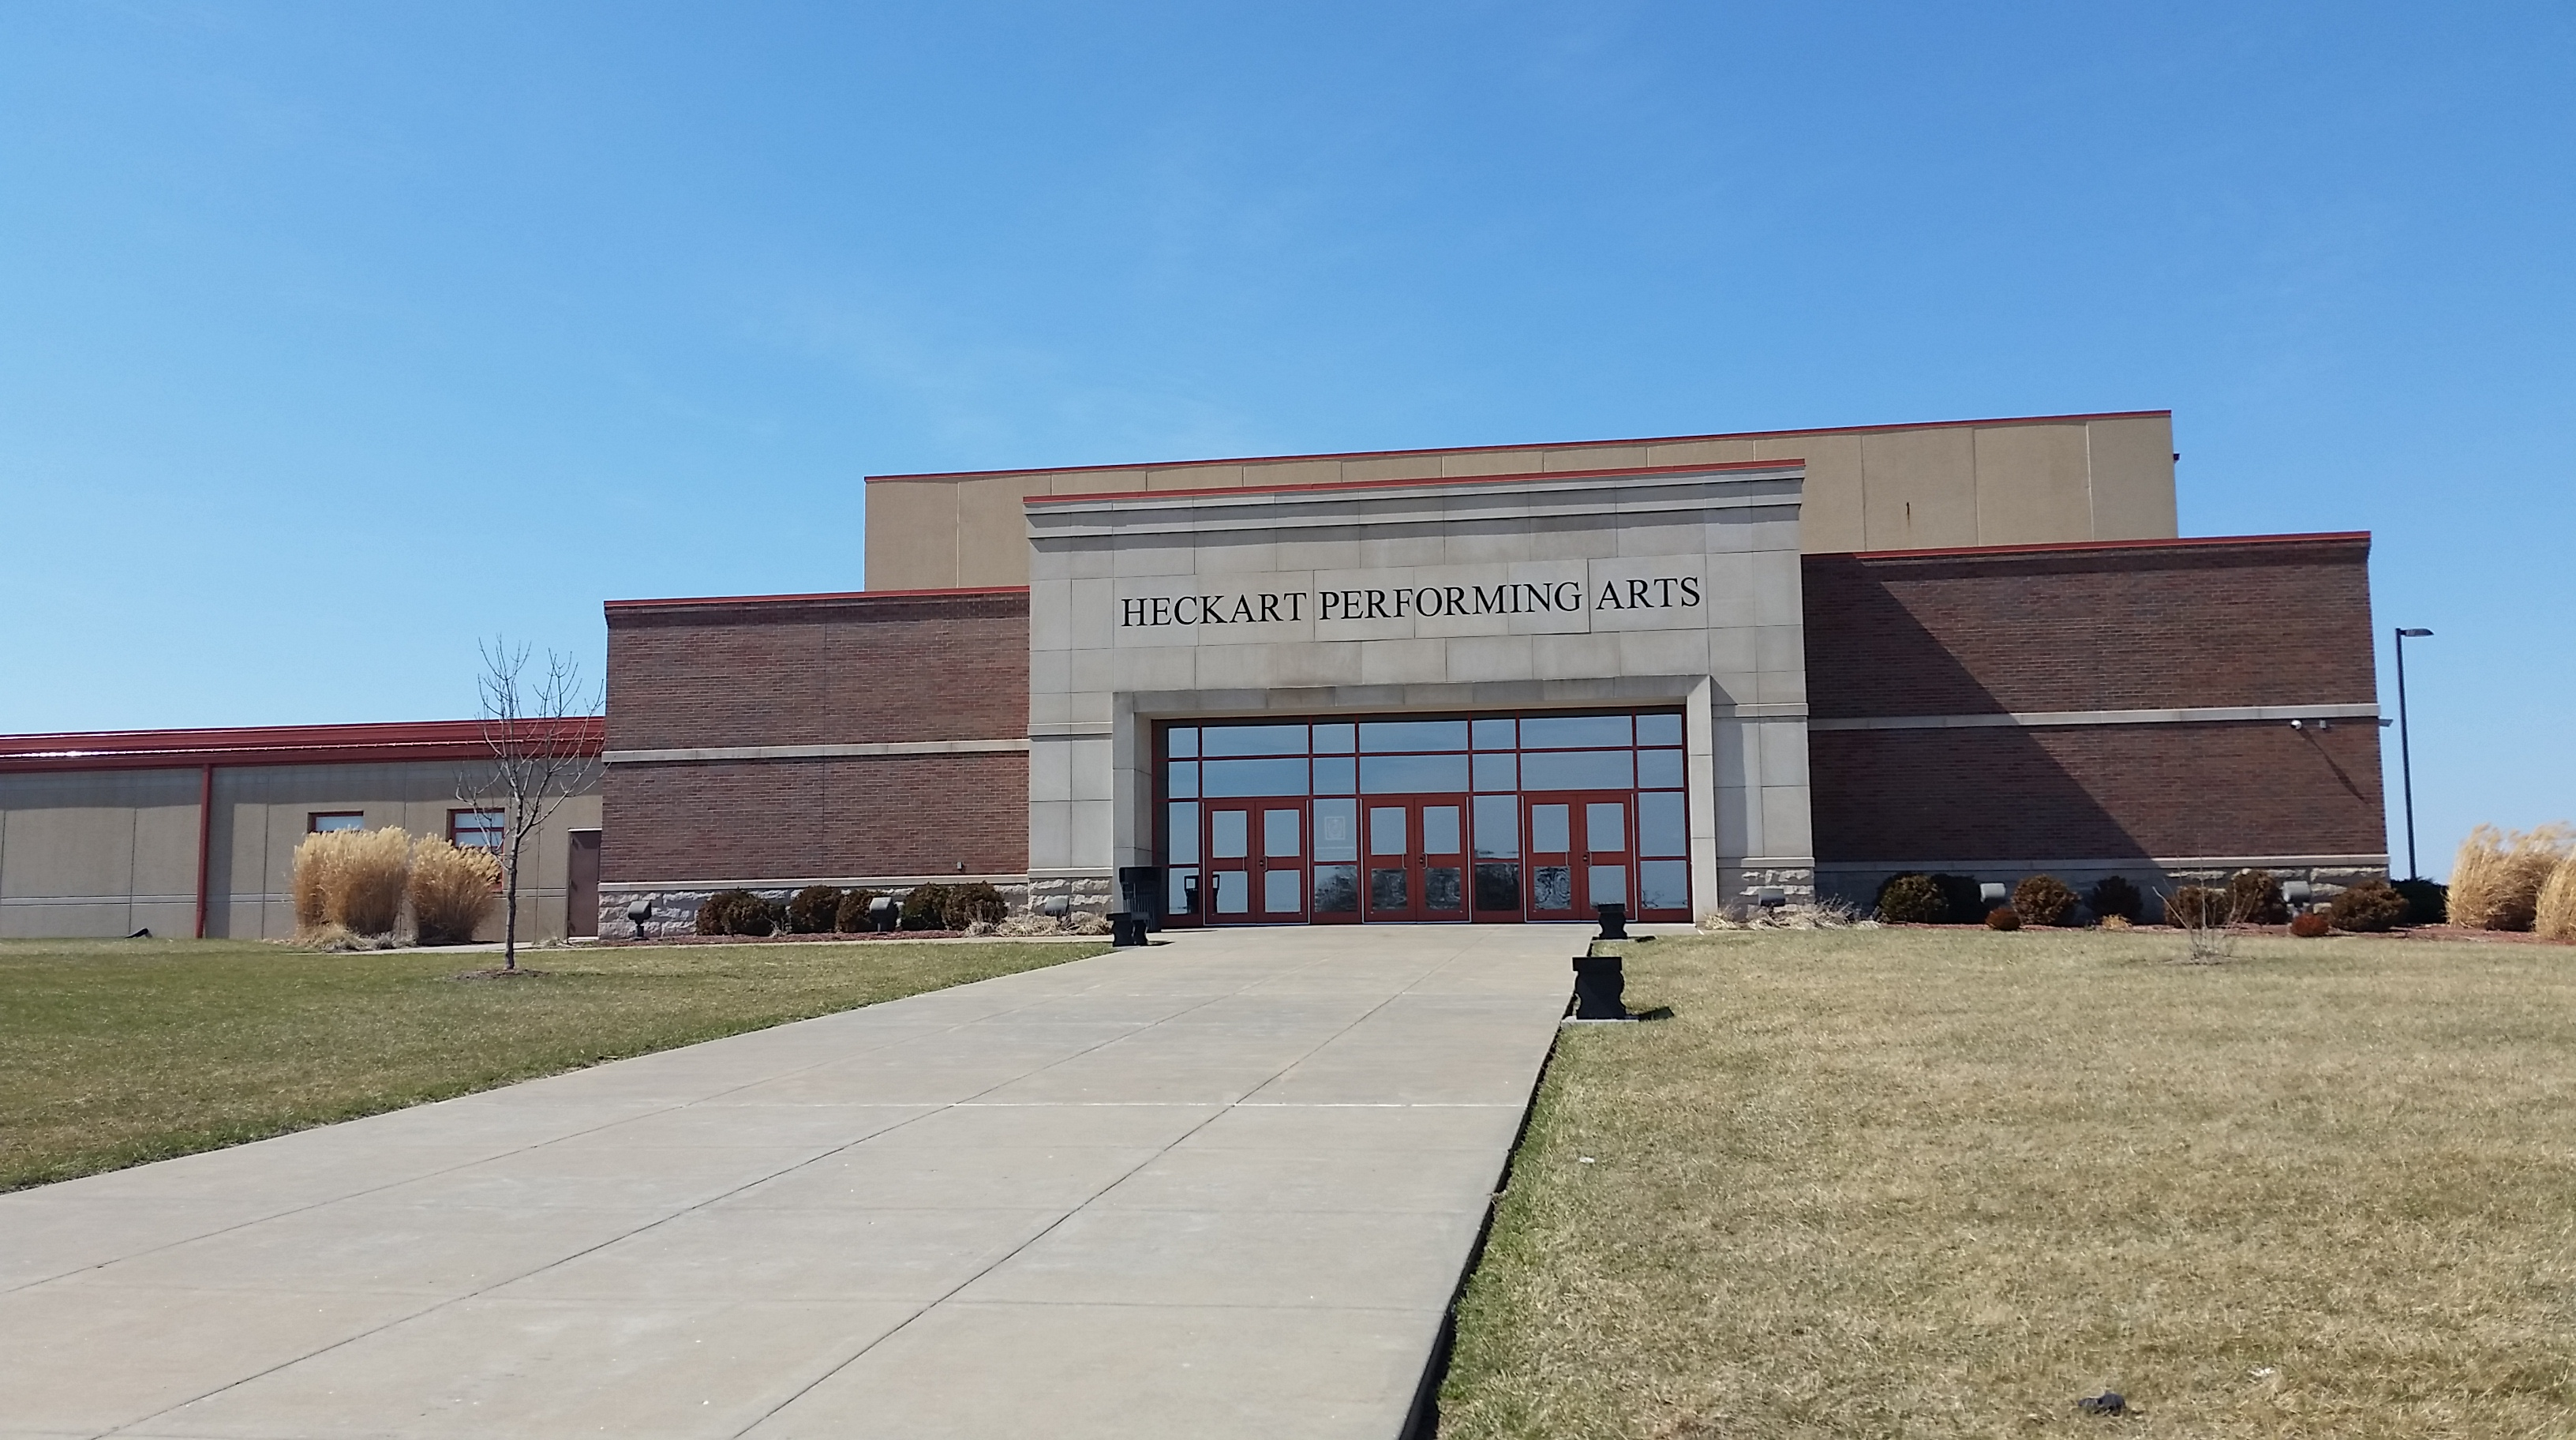 Heckart Performing Arts Center